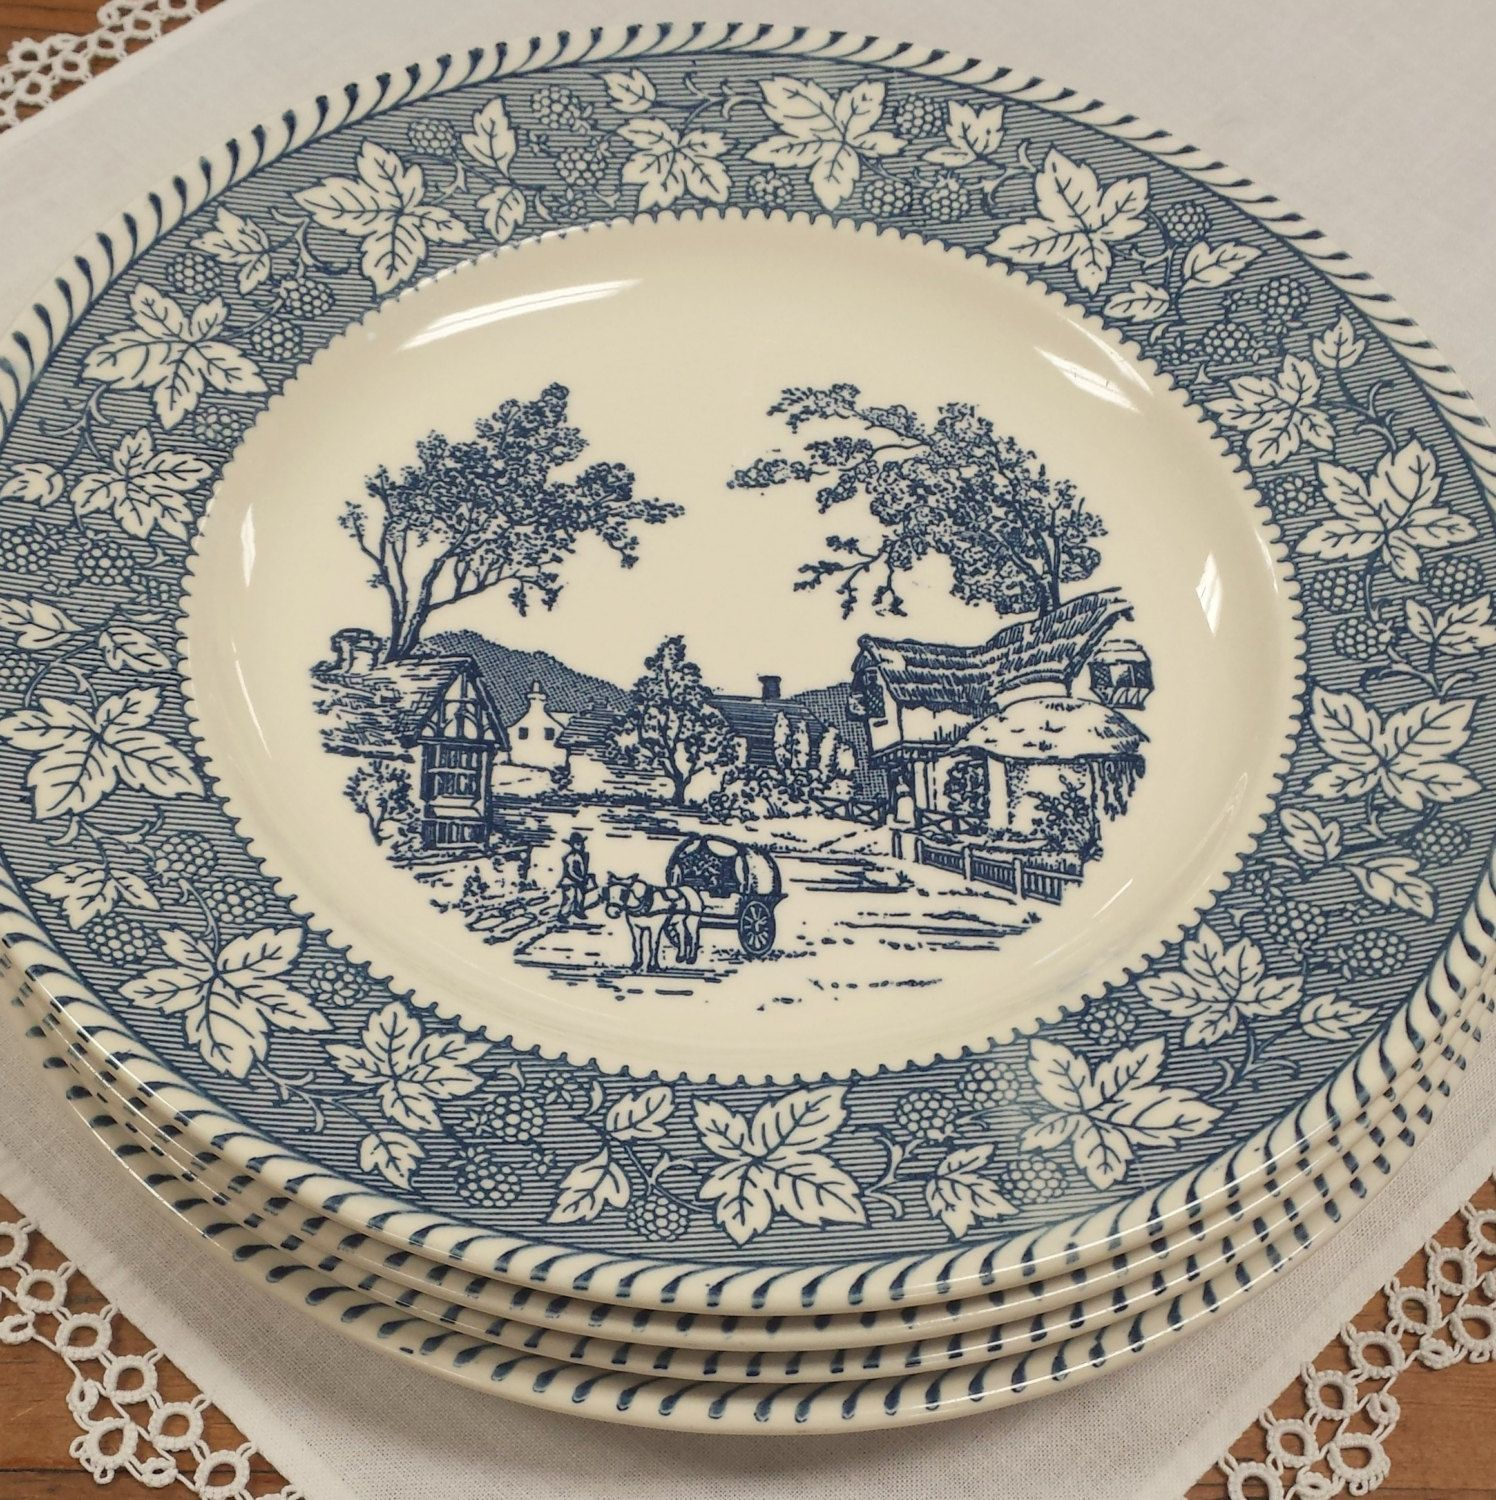 4 Dinner Plates Shakespeare Country by Homer Laughlin Blue Transferware Replacement China  sc 1 st  Pinterest & 4 Dinner Plates Shakespeare Country by Homer Laughlin Blue ...